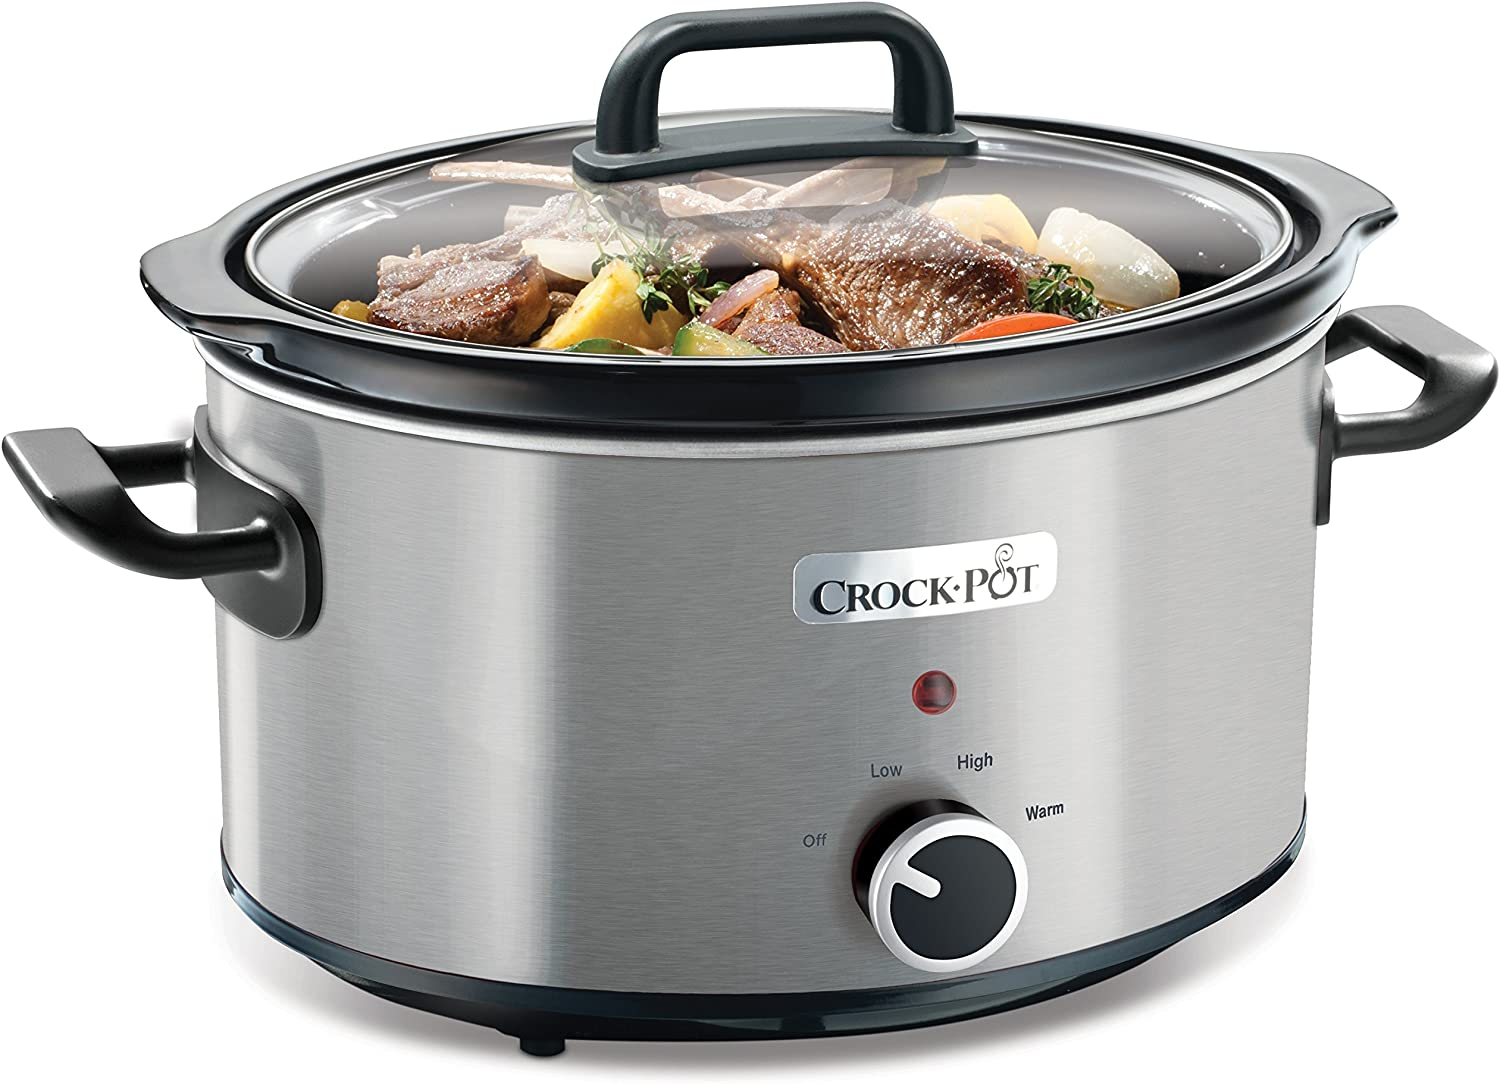 Crock Pot 3.5L Brushed Stainless Steel Slow Cooker 220 240 volt 50HZ (Will not work in USA)